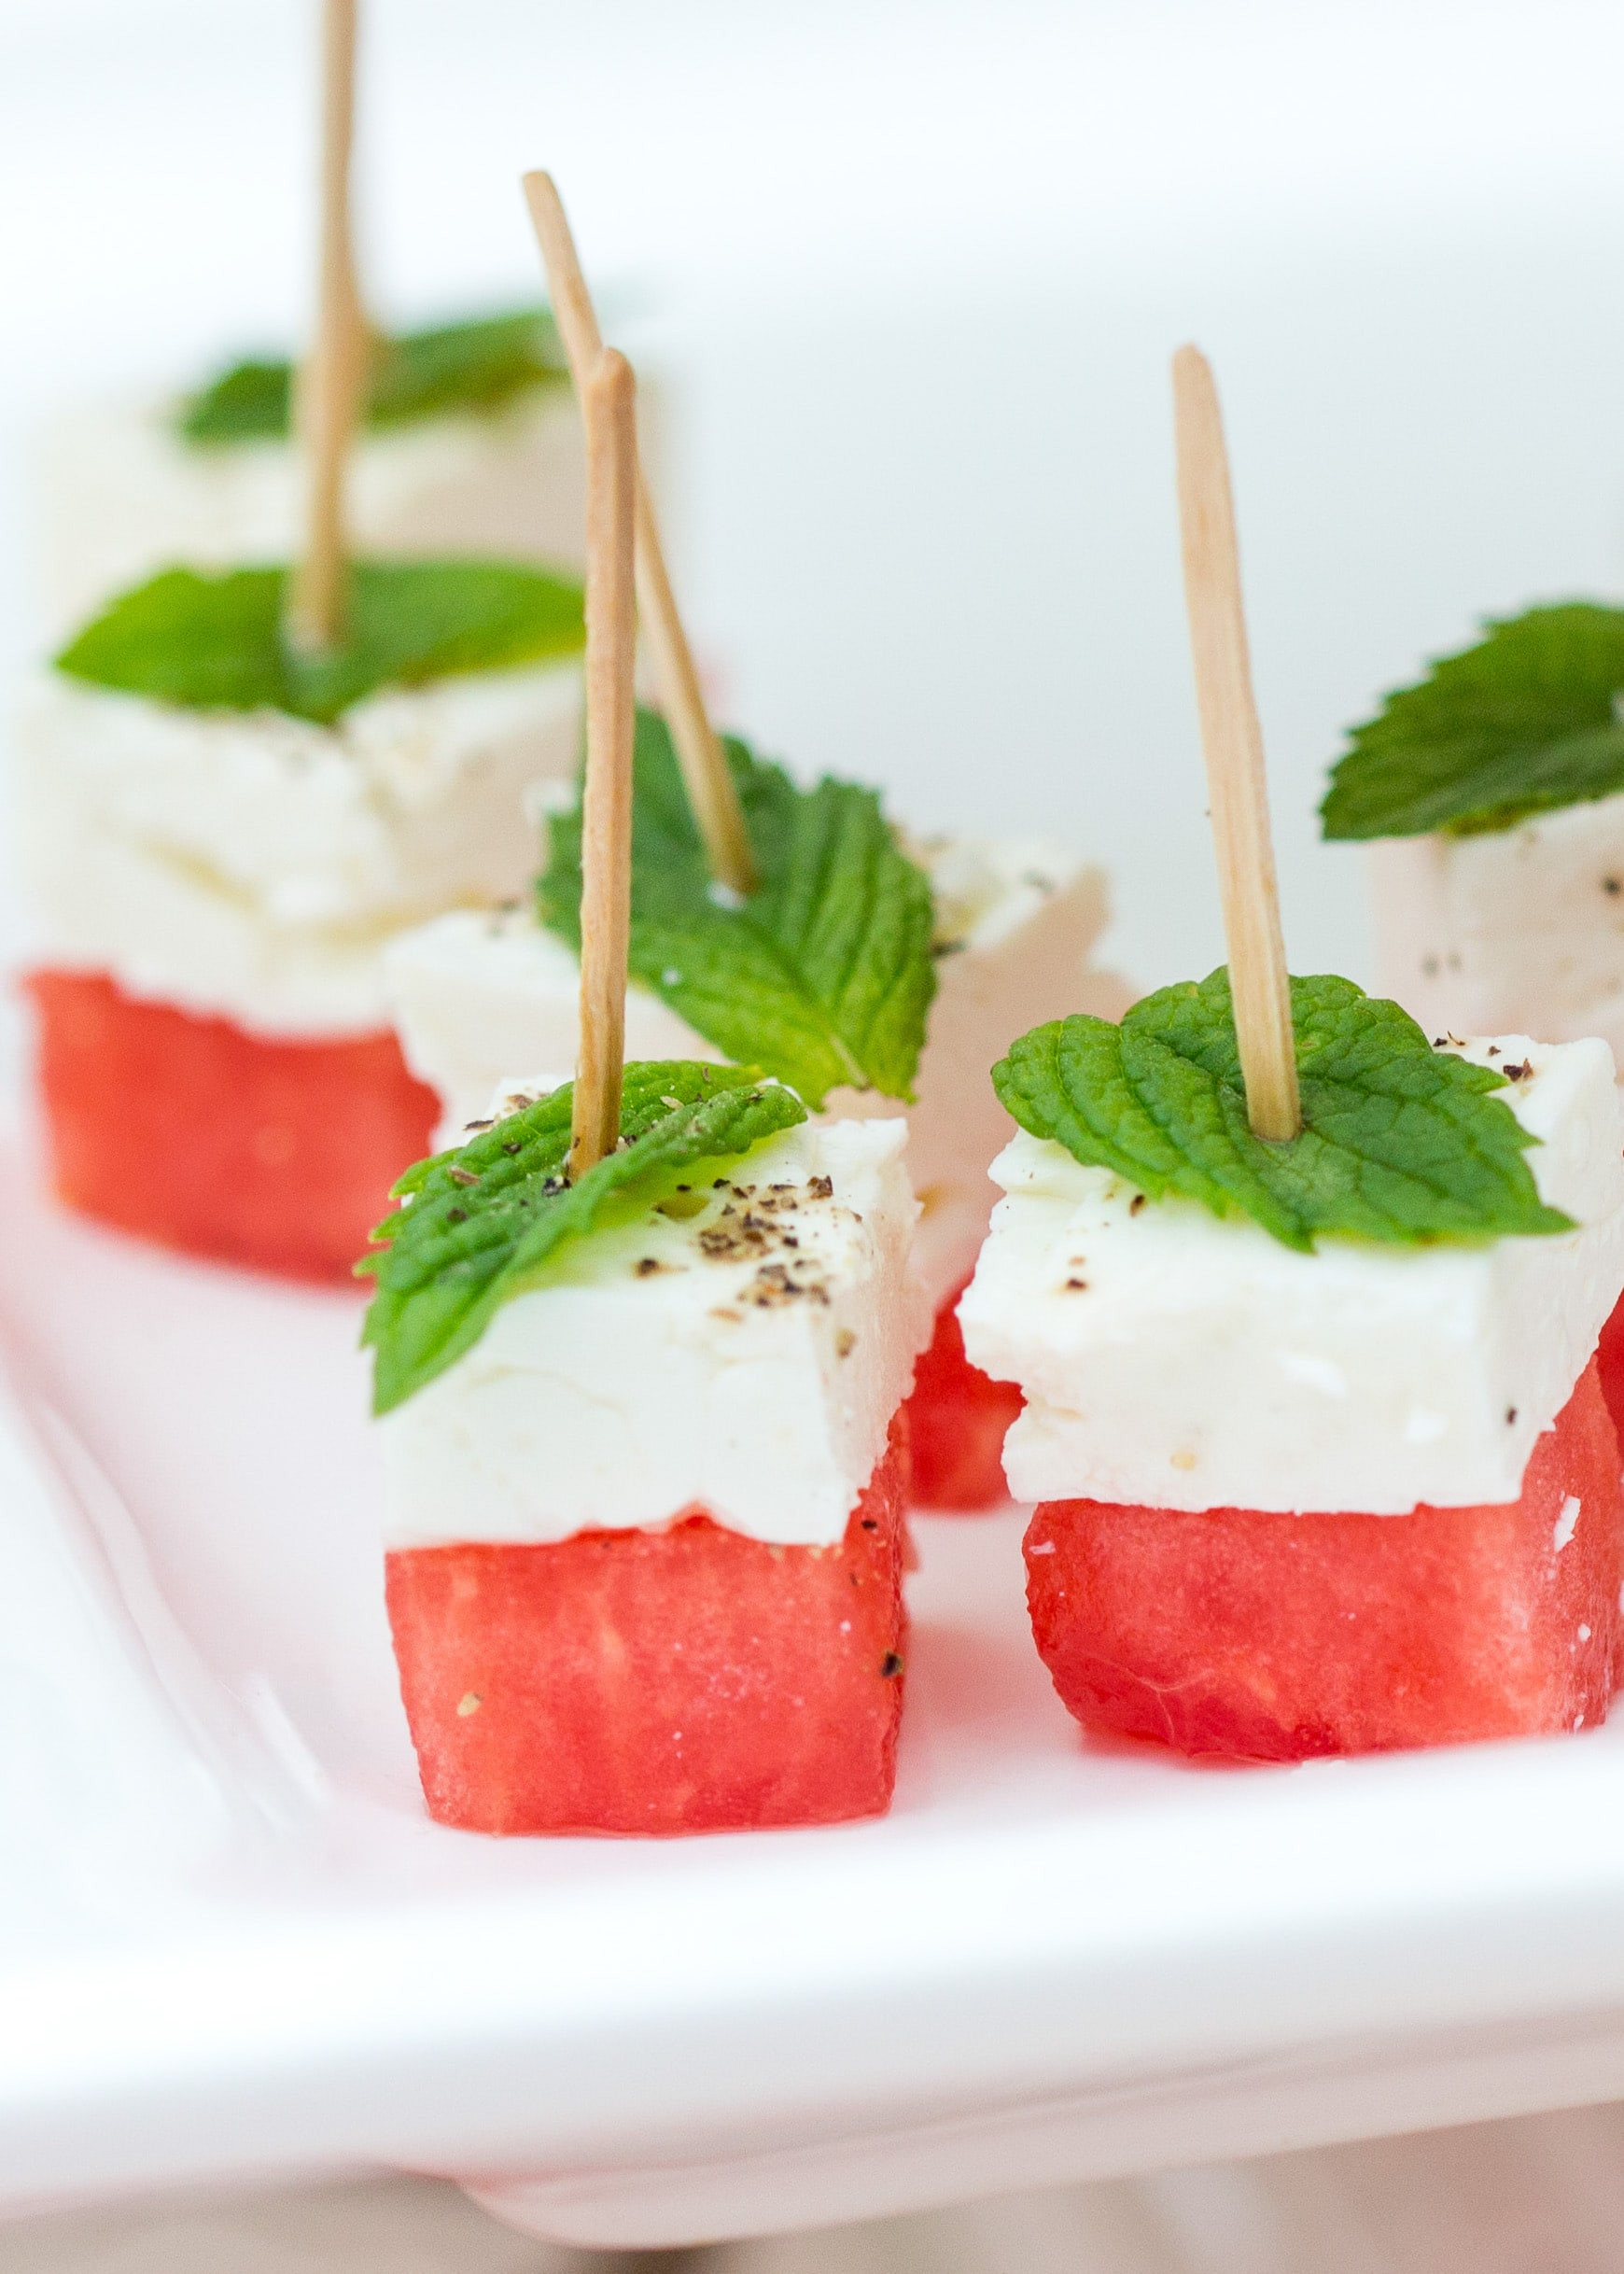 Healthy Easy Appetizers  Healthy Summer Appetizers Easy & Delish Pizzazzerie